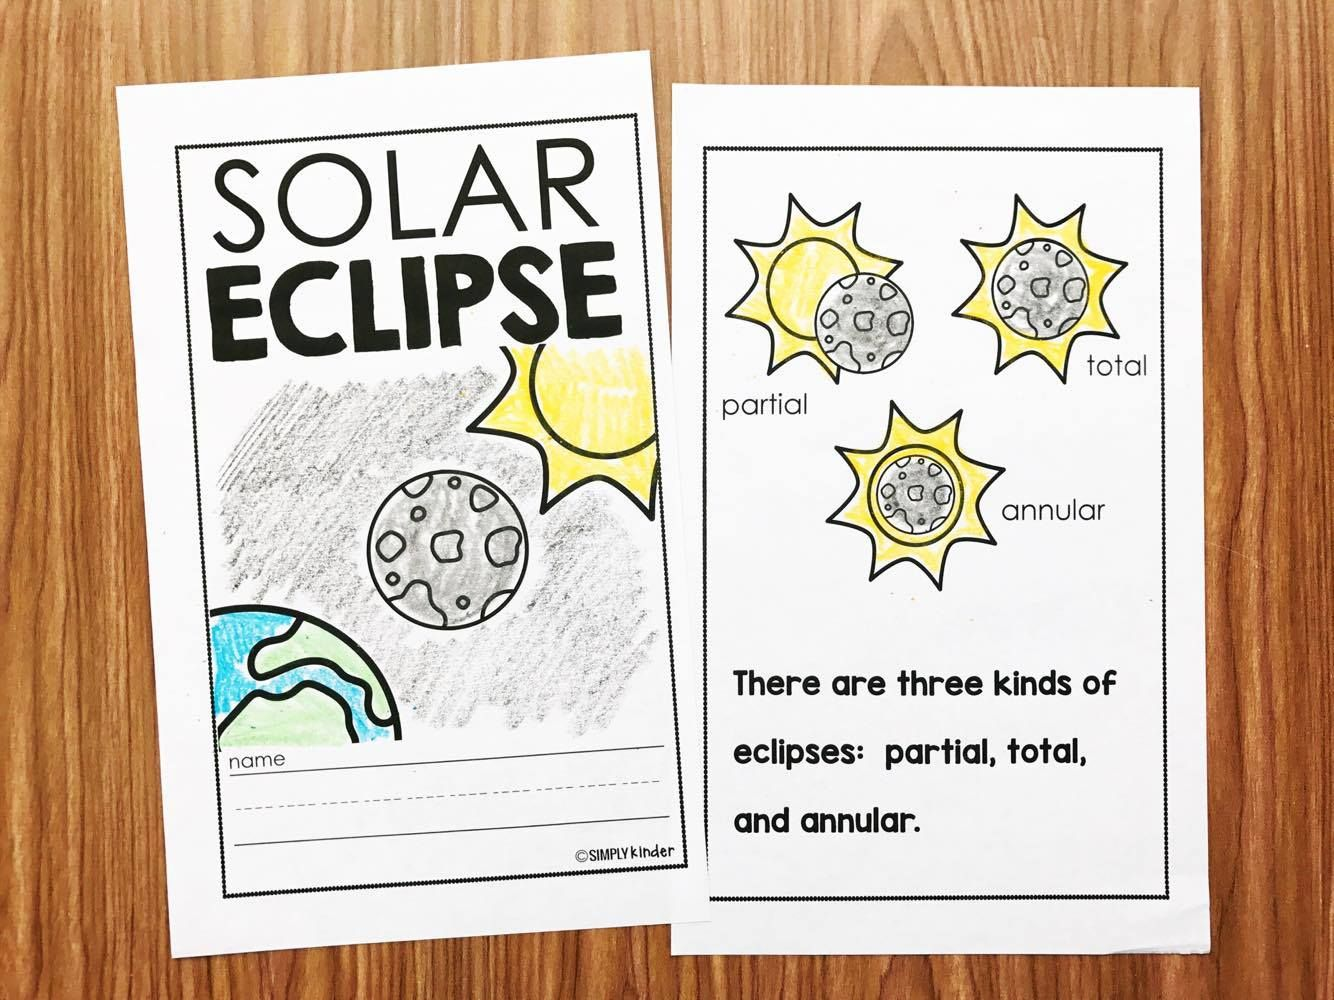 Eclipse Videos For Kids